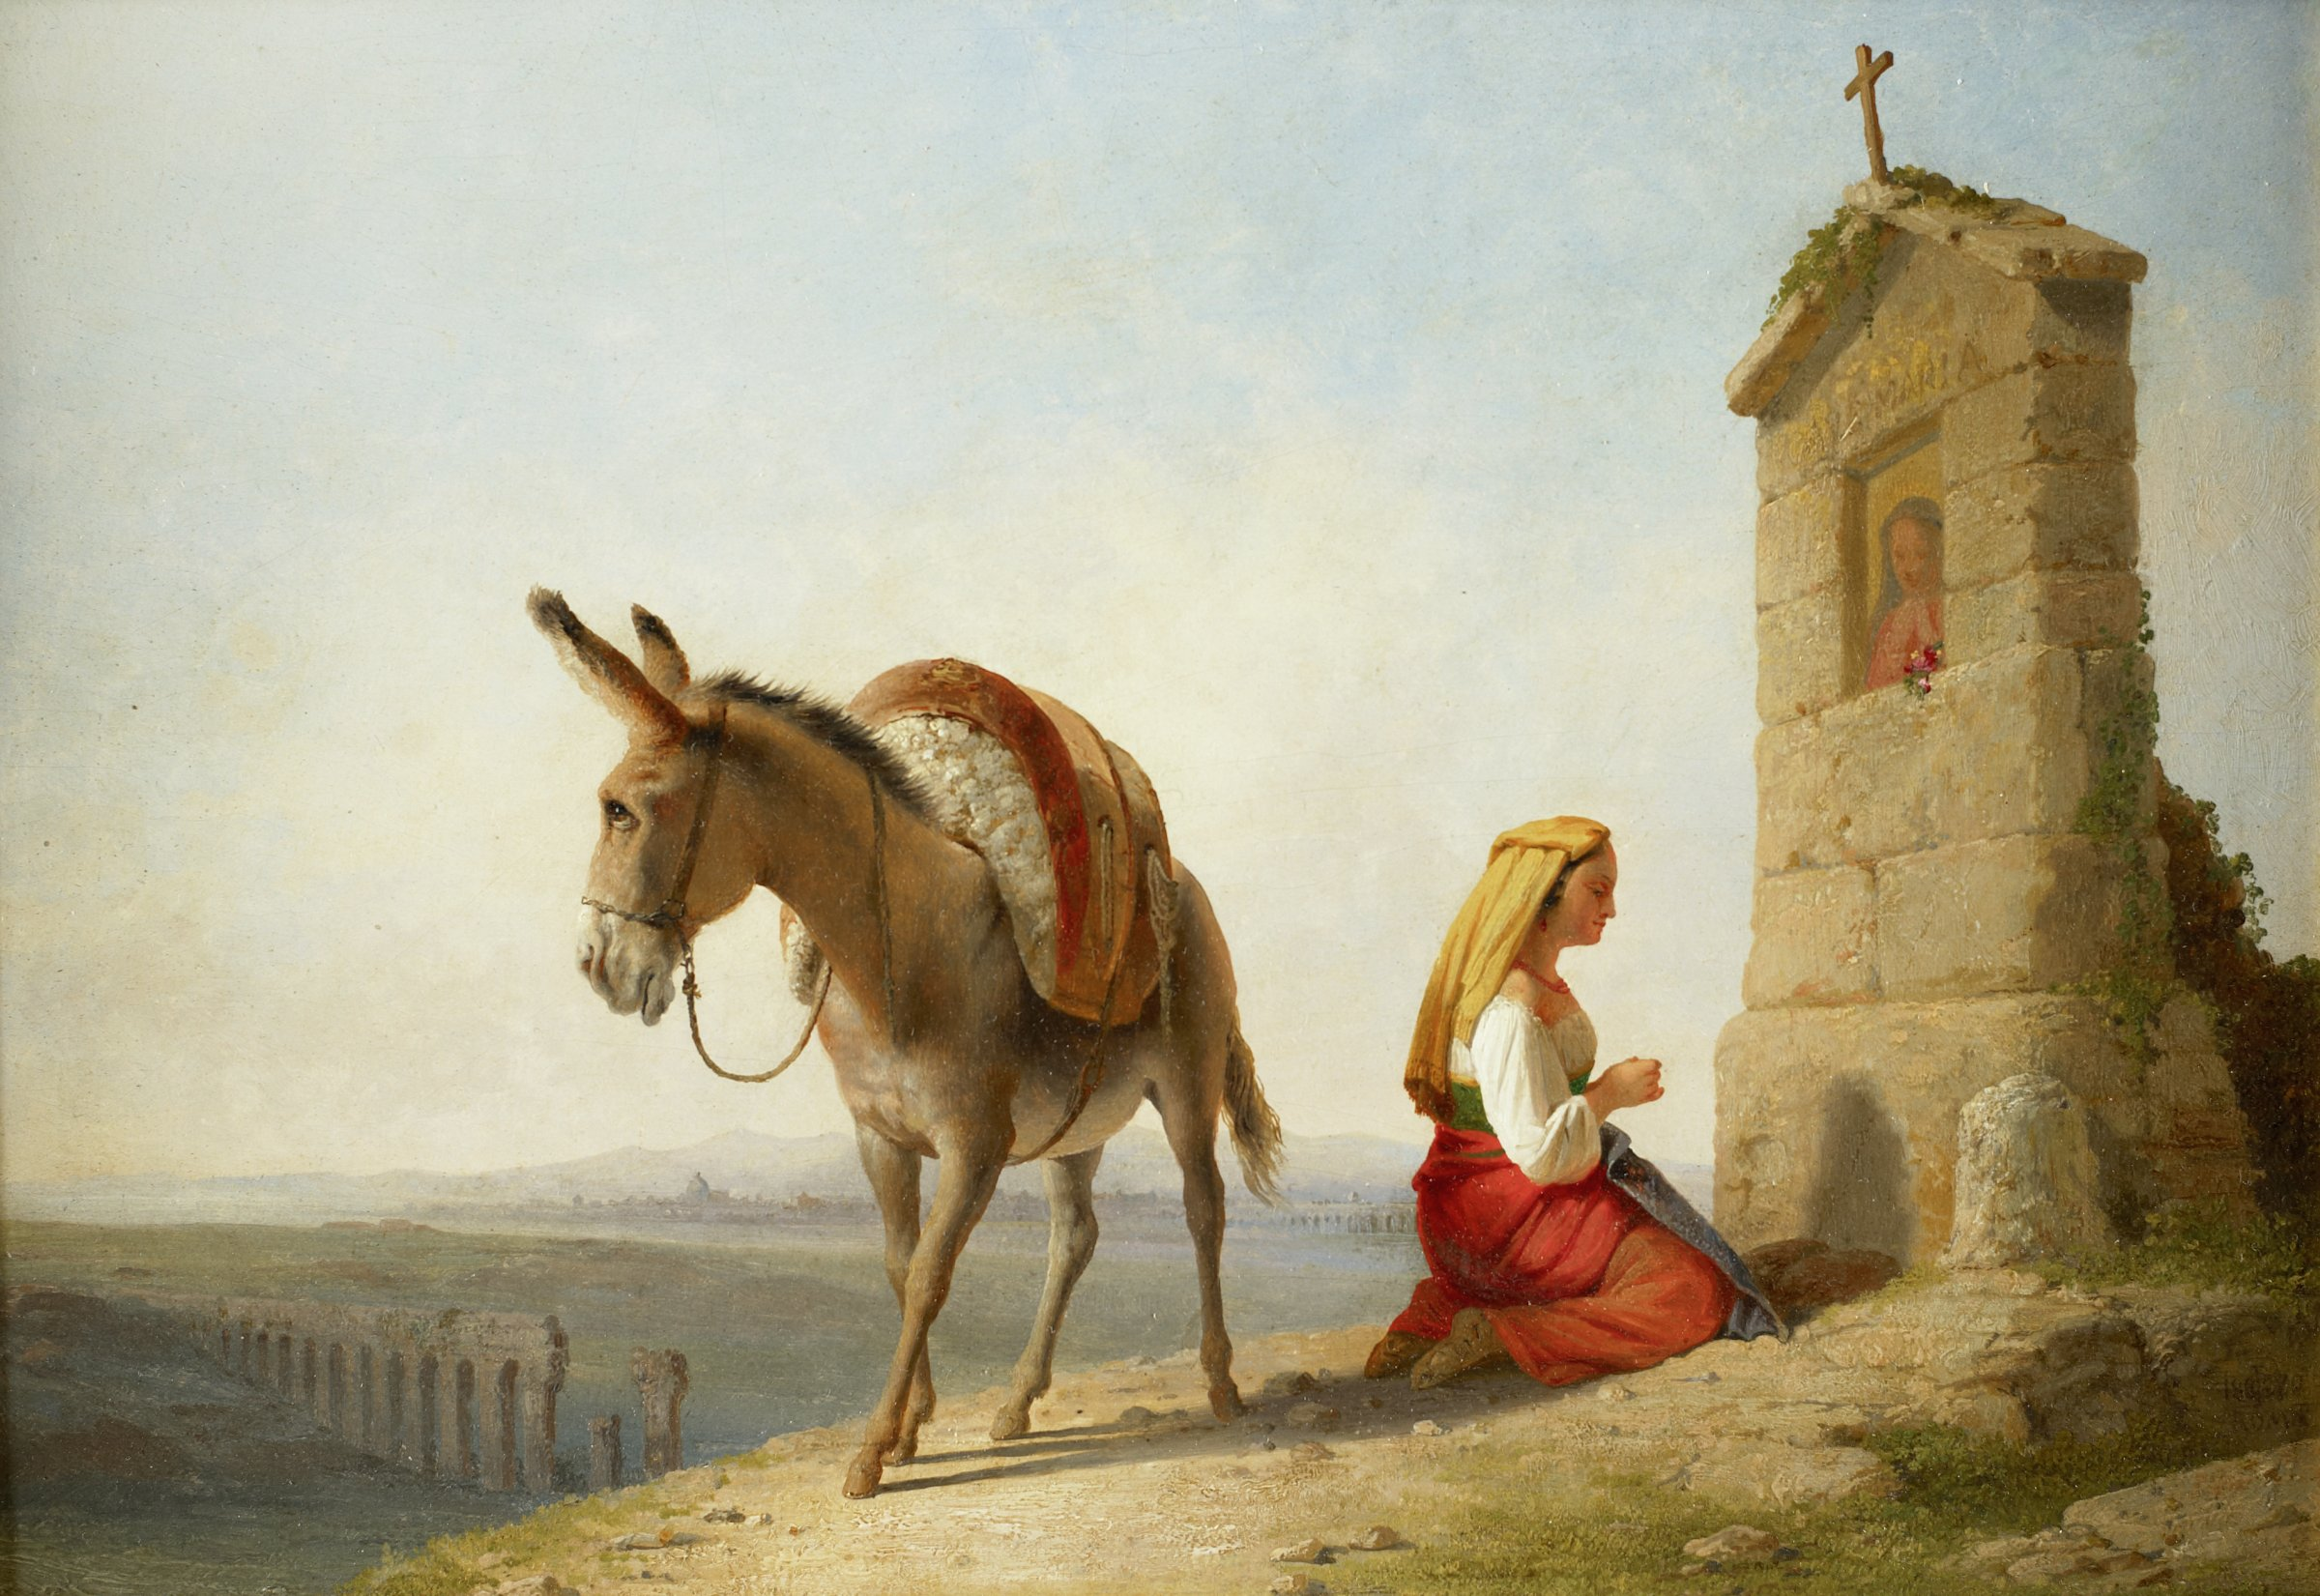 Woman in traditional Italian peasant costume kneeling before a wayside shrine to the Virgin Mary in the Campagna outside Rome. Ruins of the Claudian Aqueduct visible in the lower left corner of the composition. The dome of St. Peter's Basilica can be seen in the distant skyline.